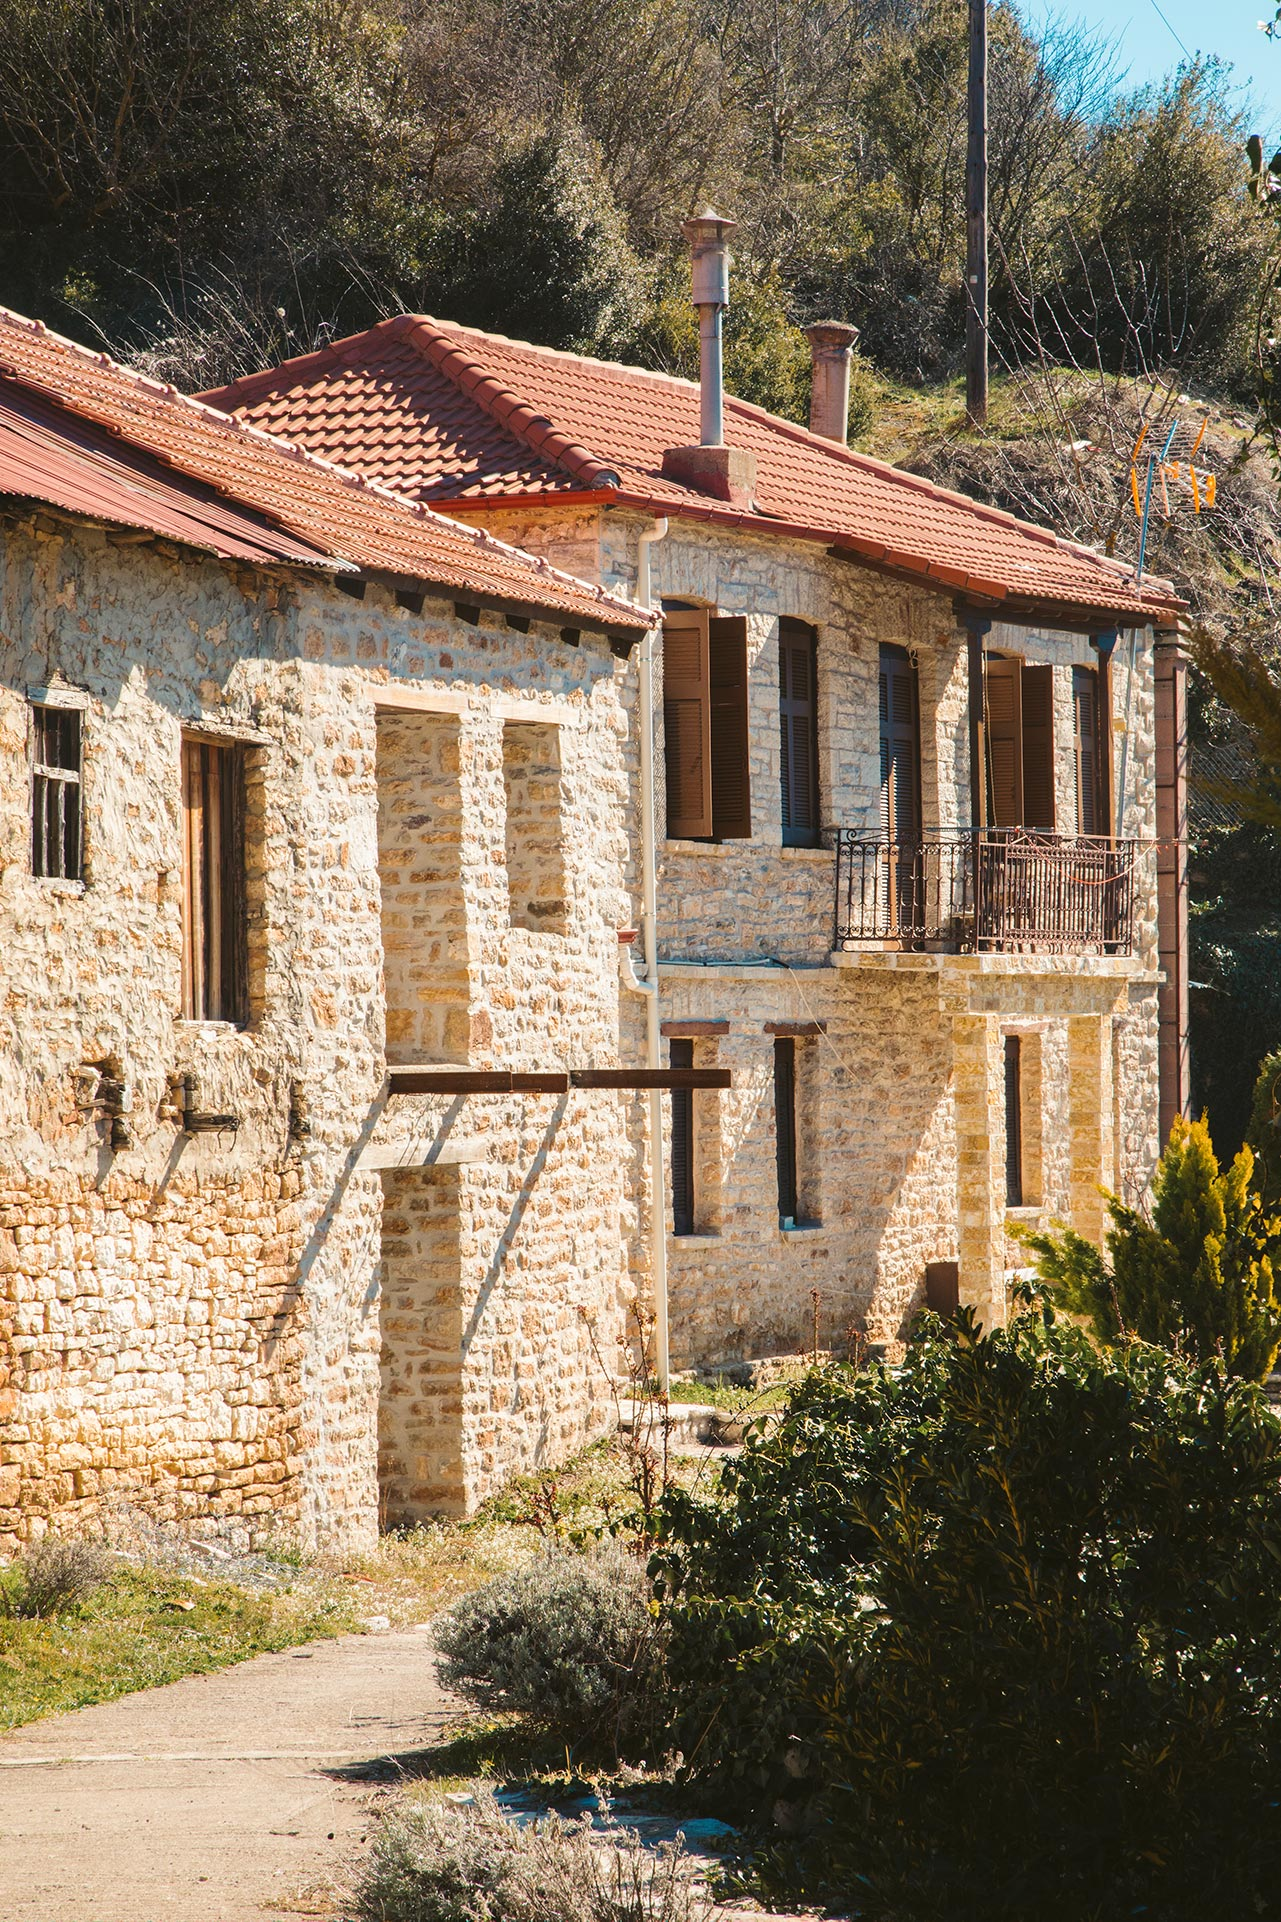 Korischades village is full of history and tradition